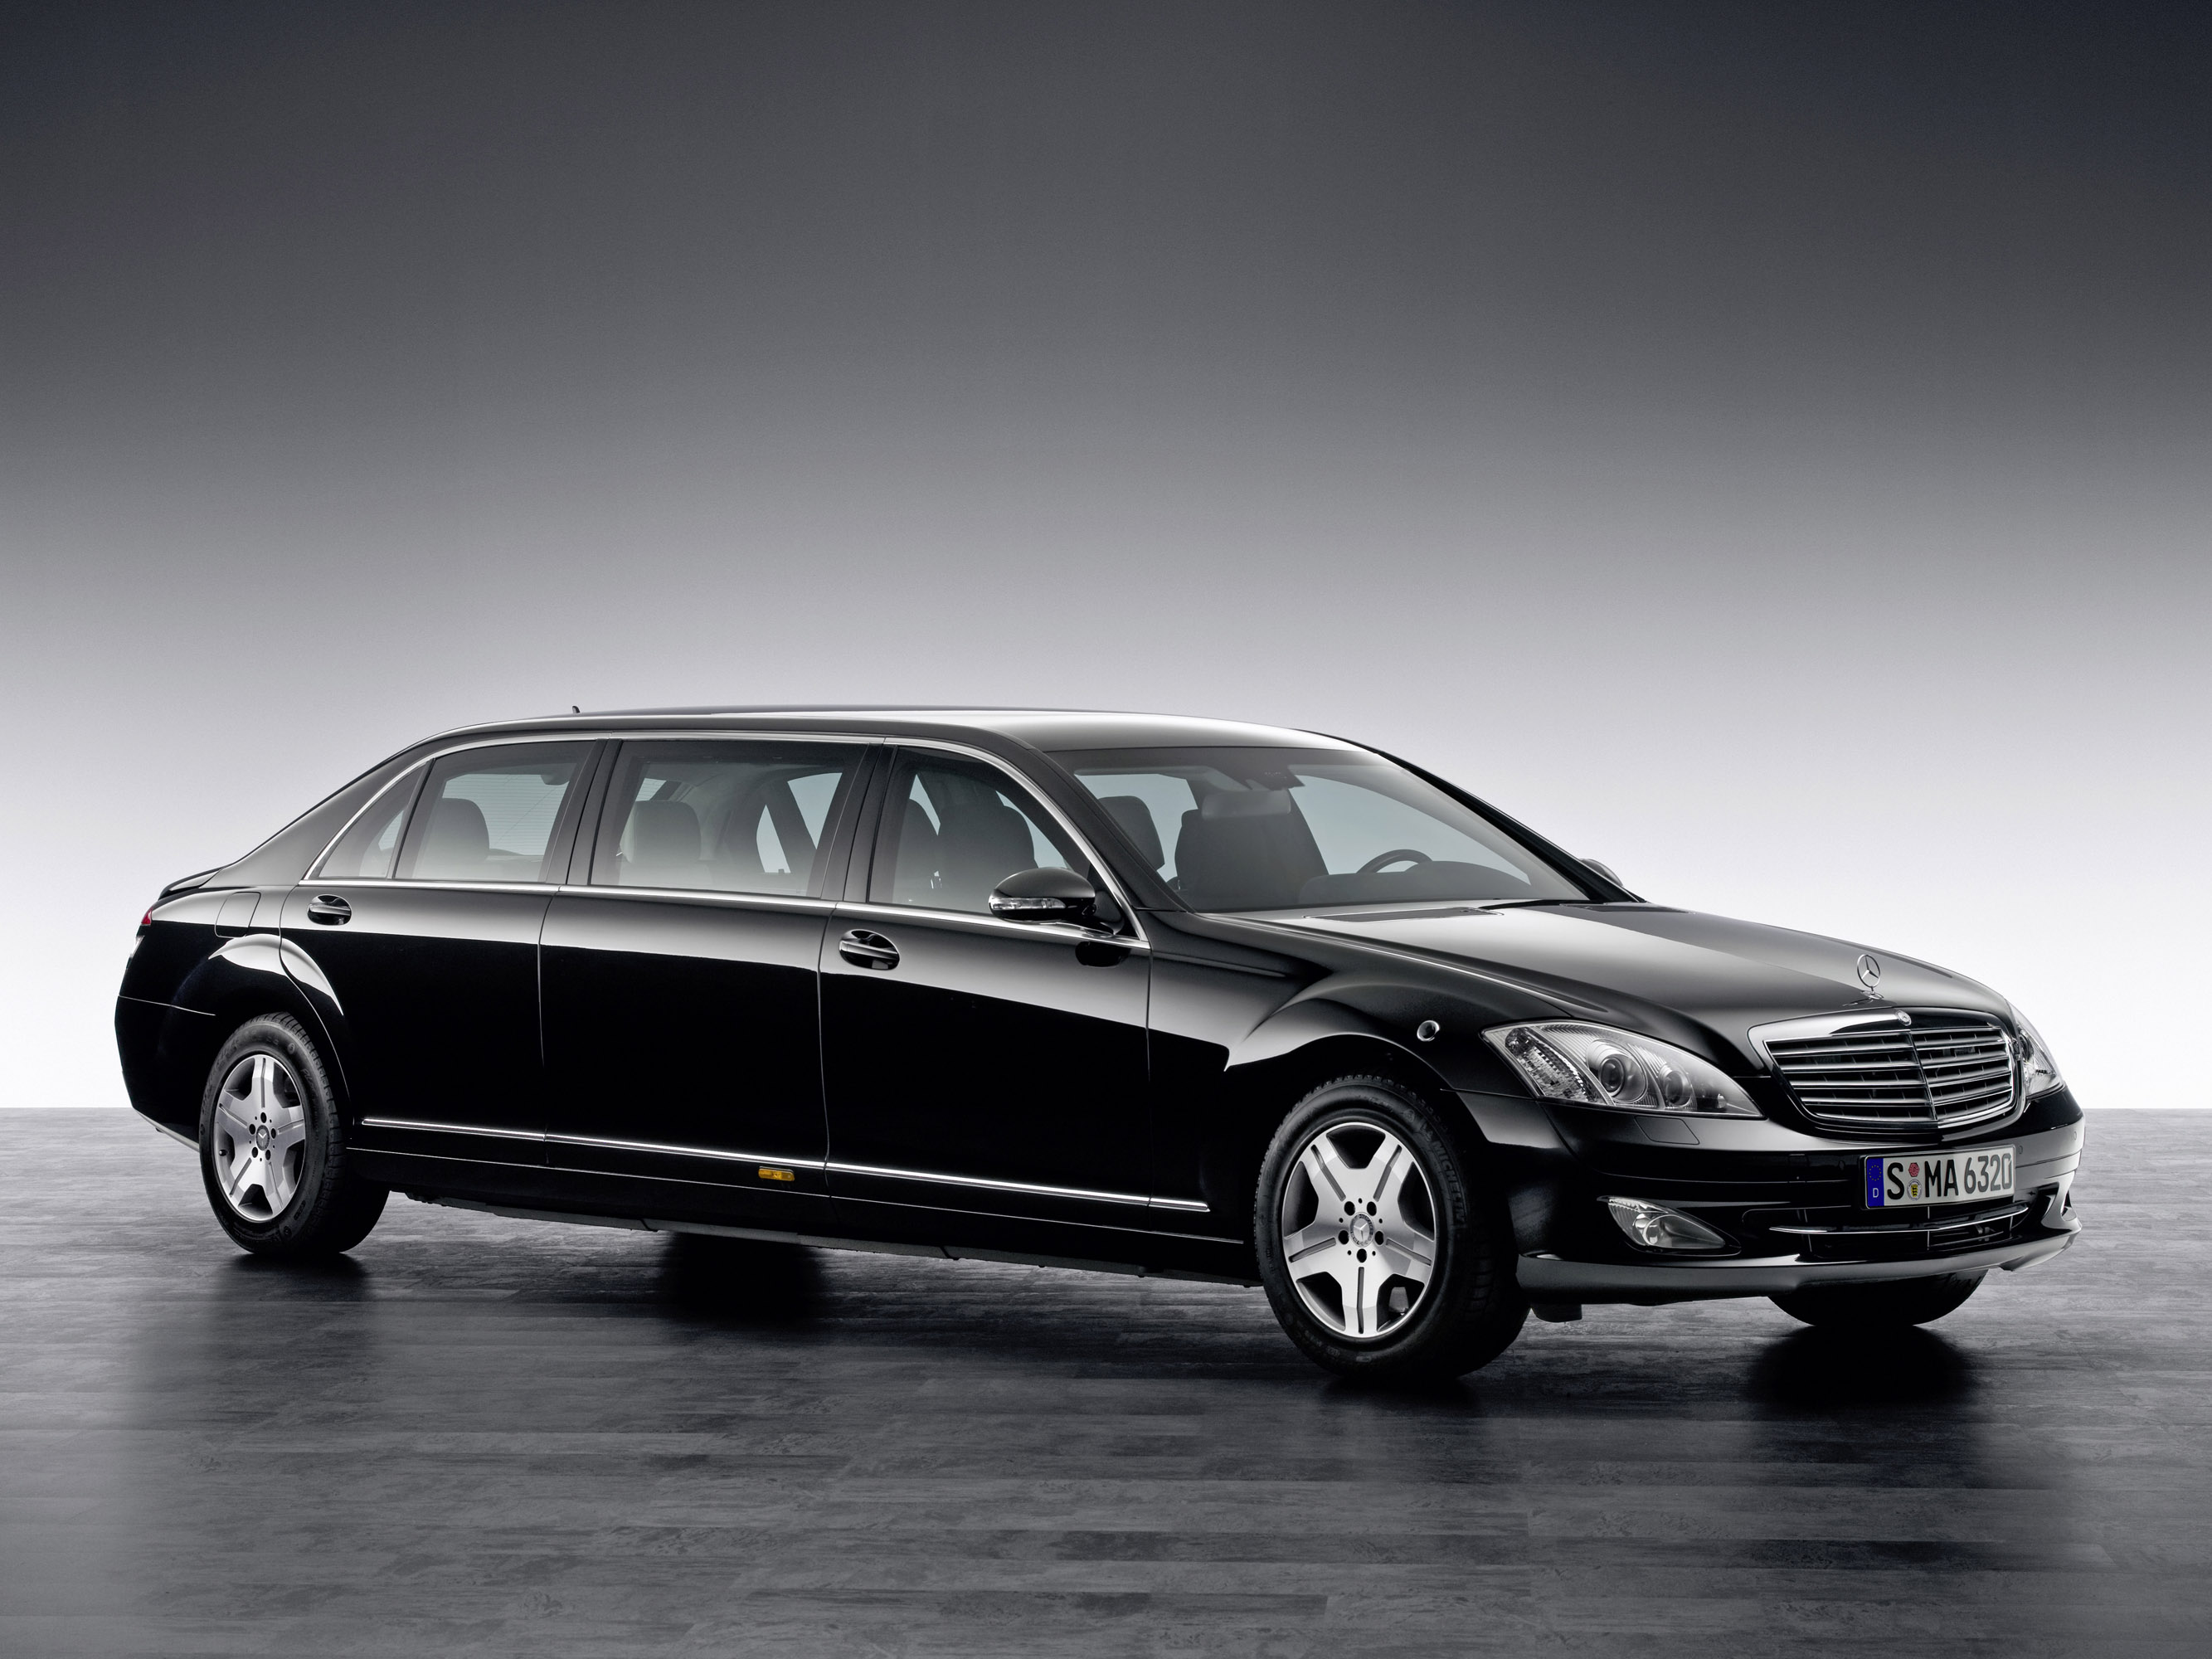 Mercedes-Benz S 600 Guard Pullman photo #1